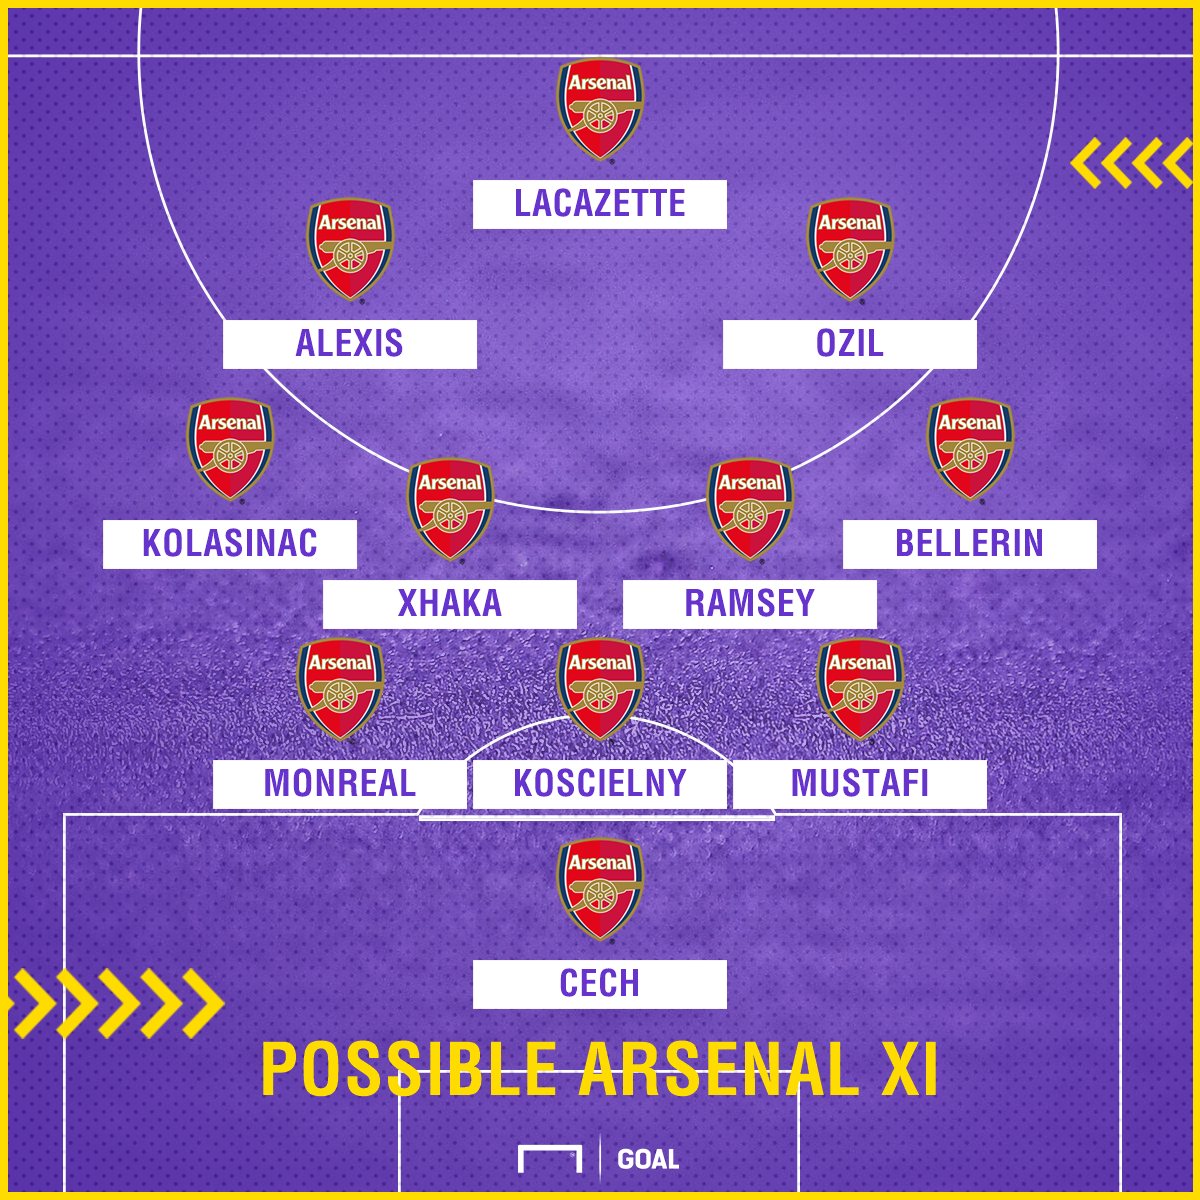 Arsenal Chelsea XI